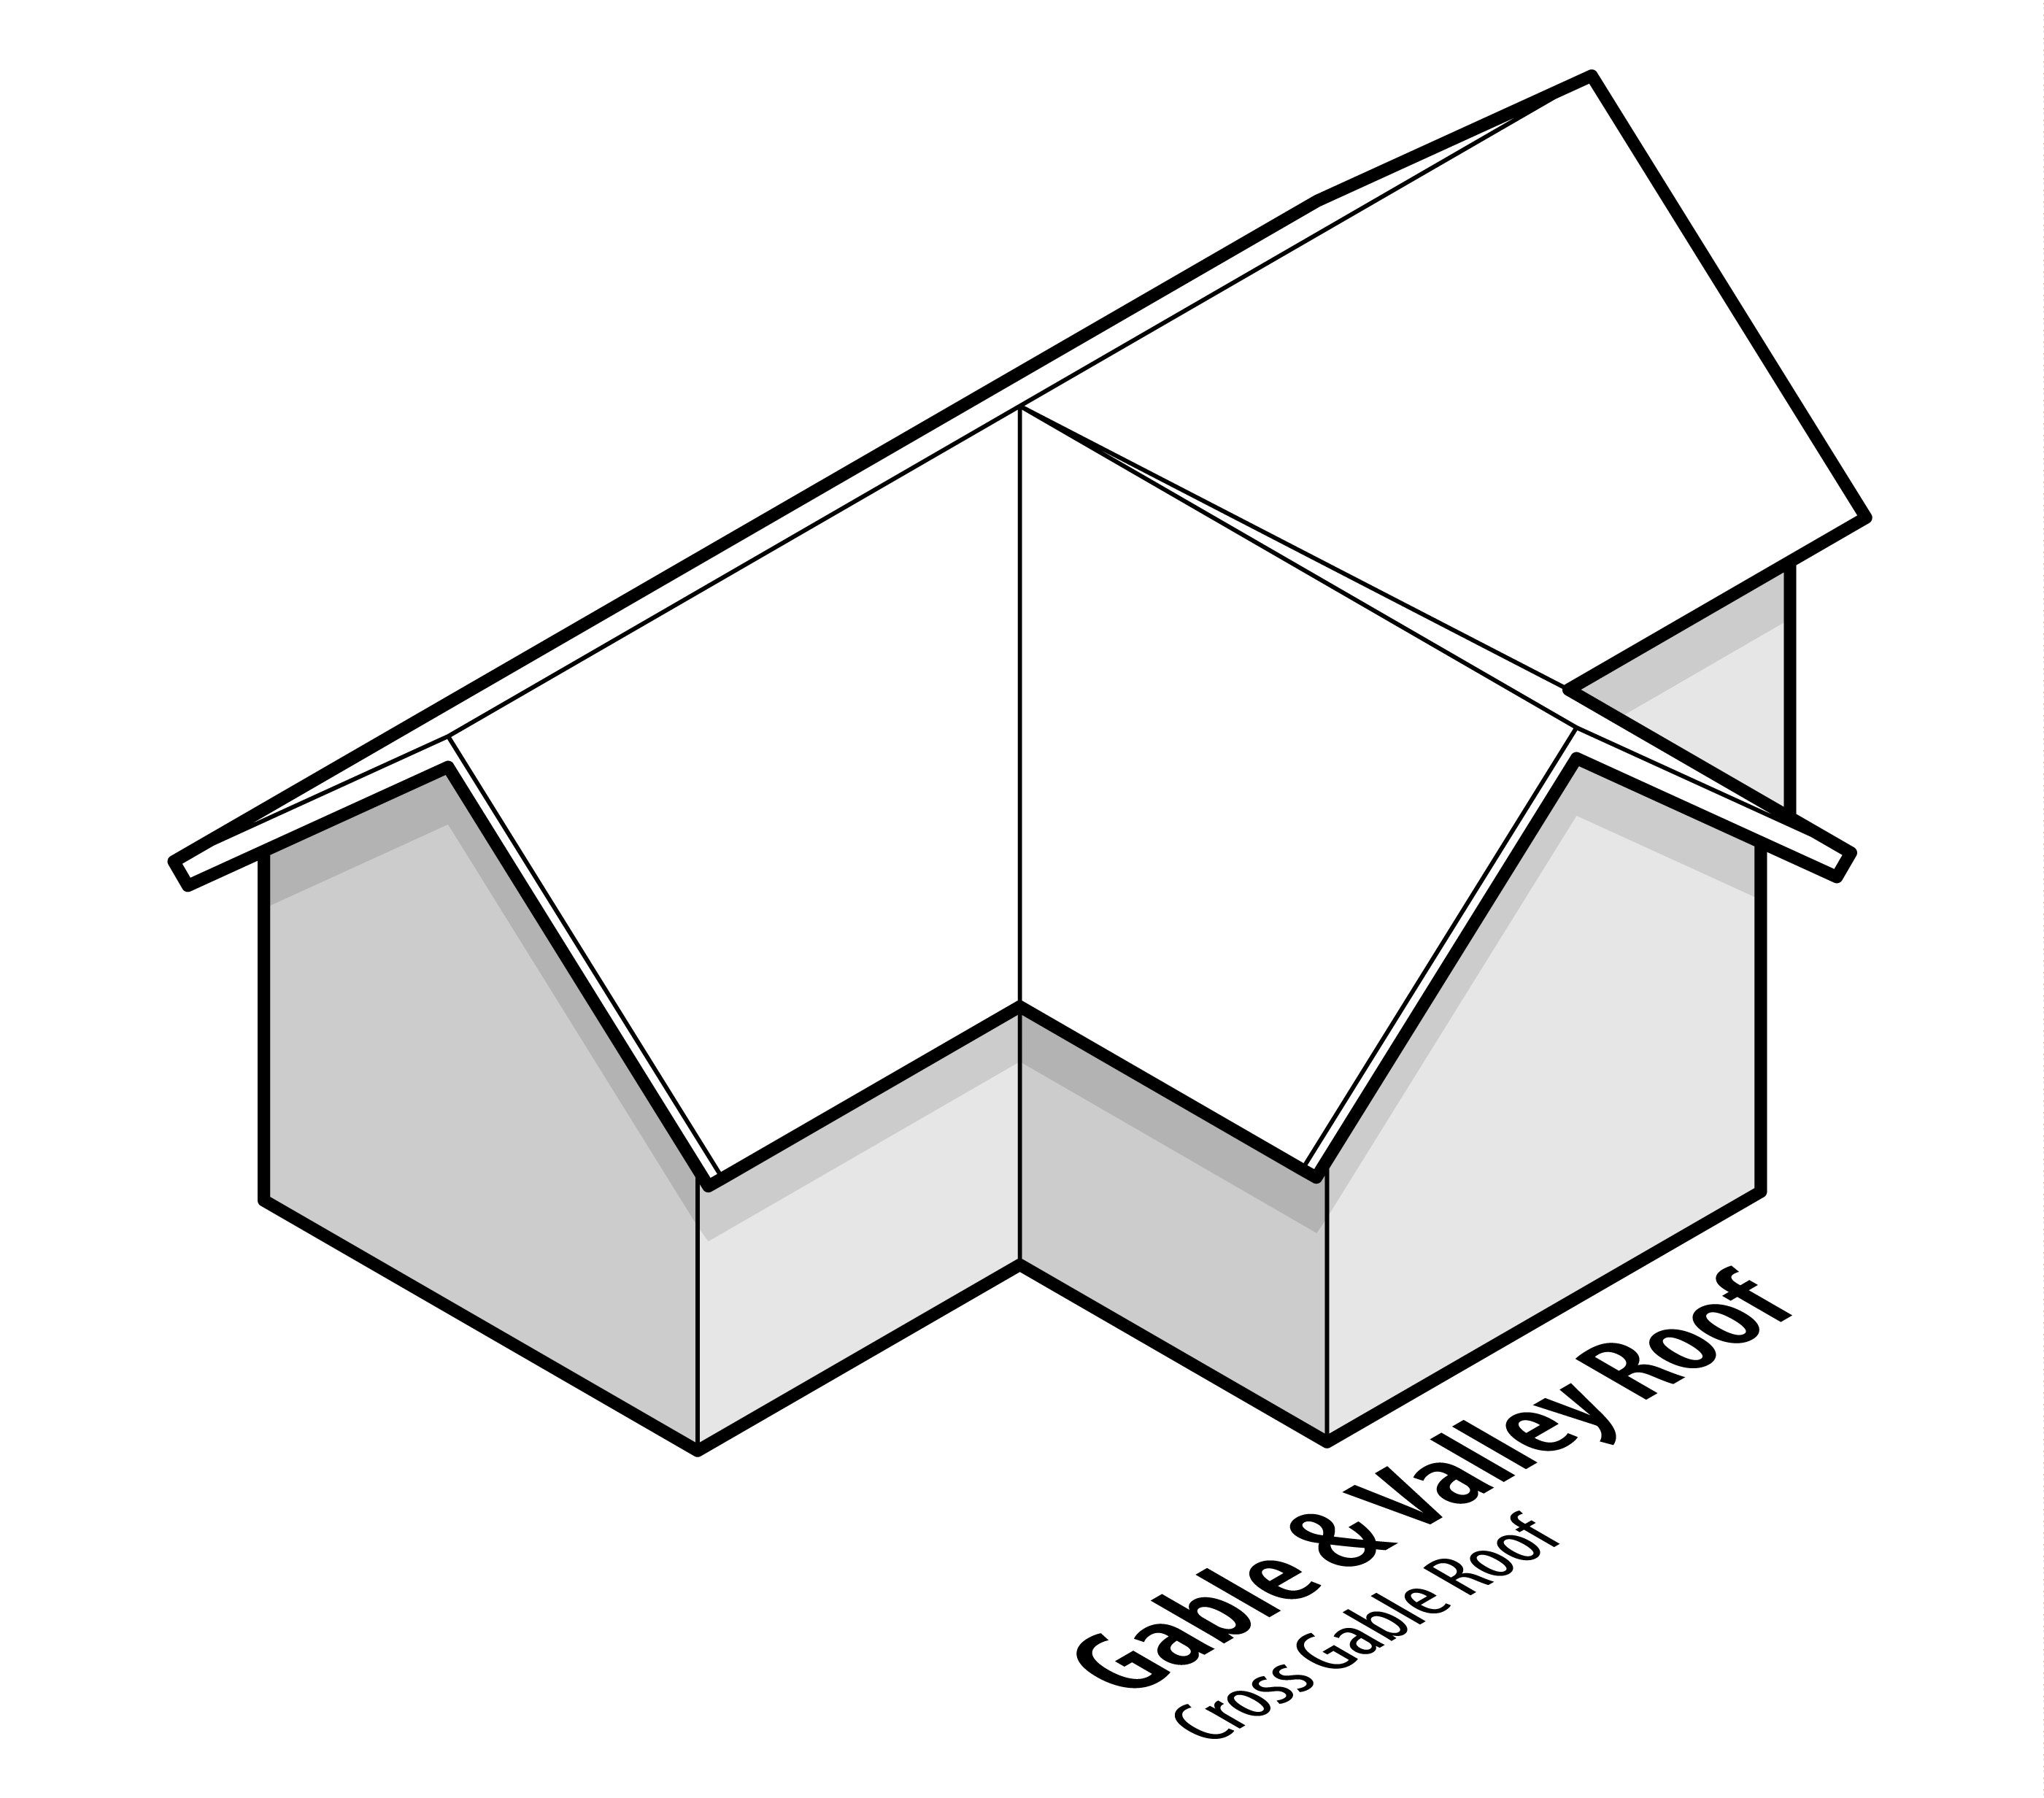 36 Types Of Roofs Styles For Houses Illustrated Roof Design Examples Gable Roof Design House Roof Design Roof Styles